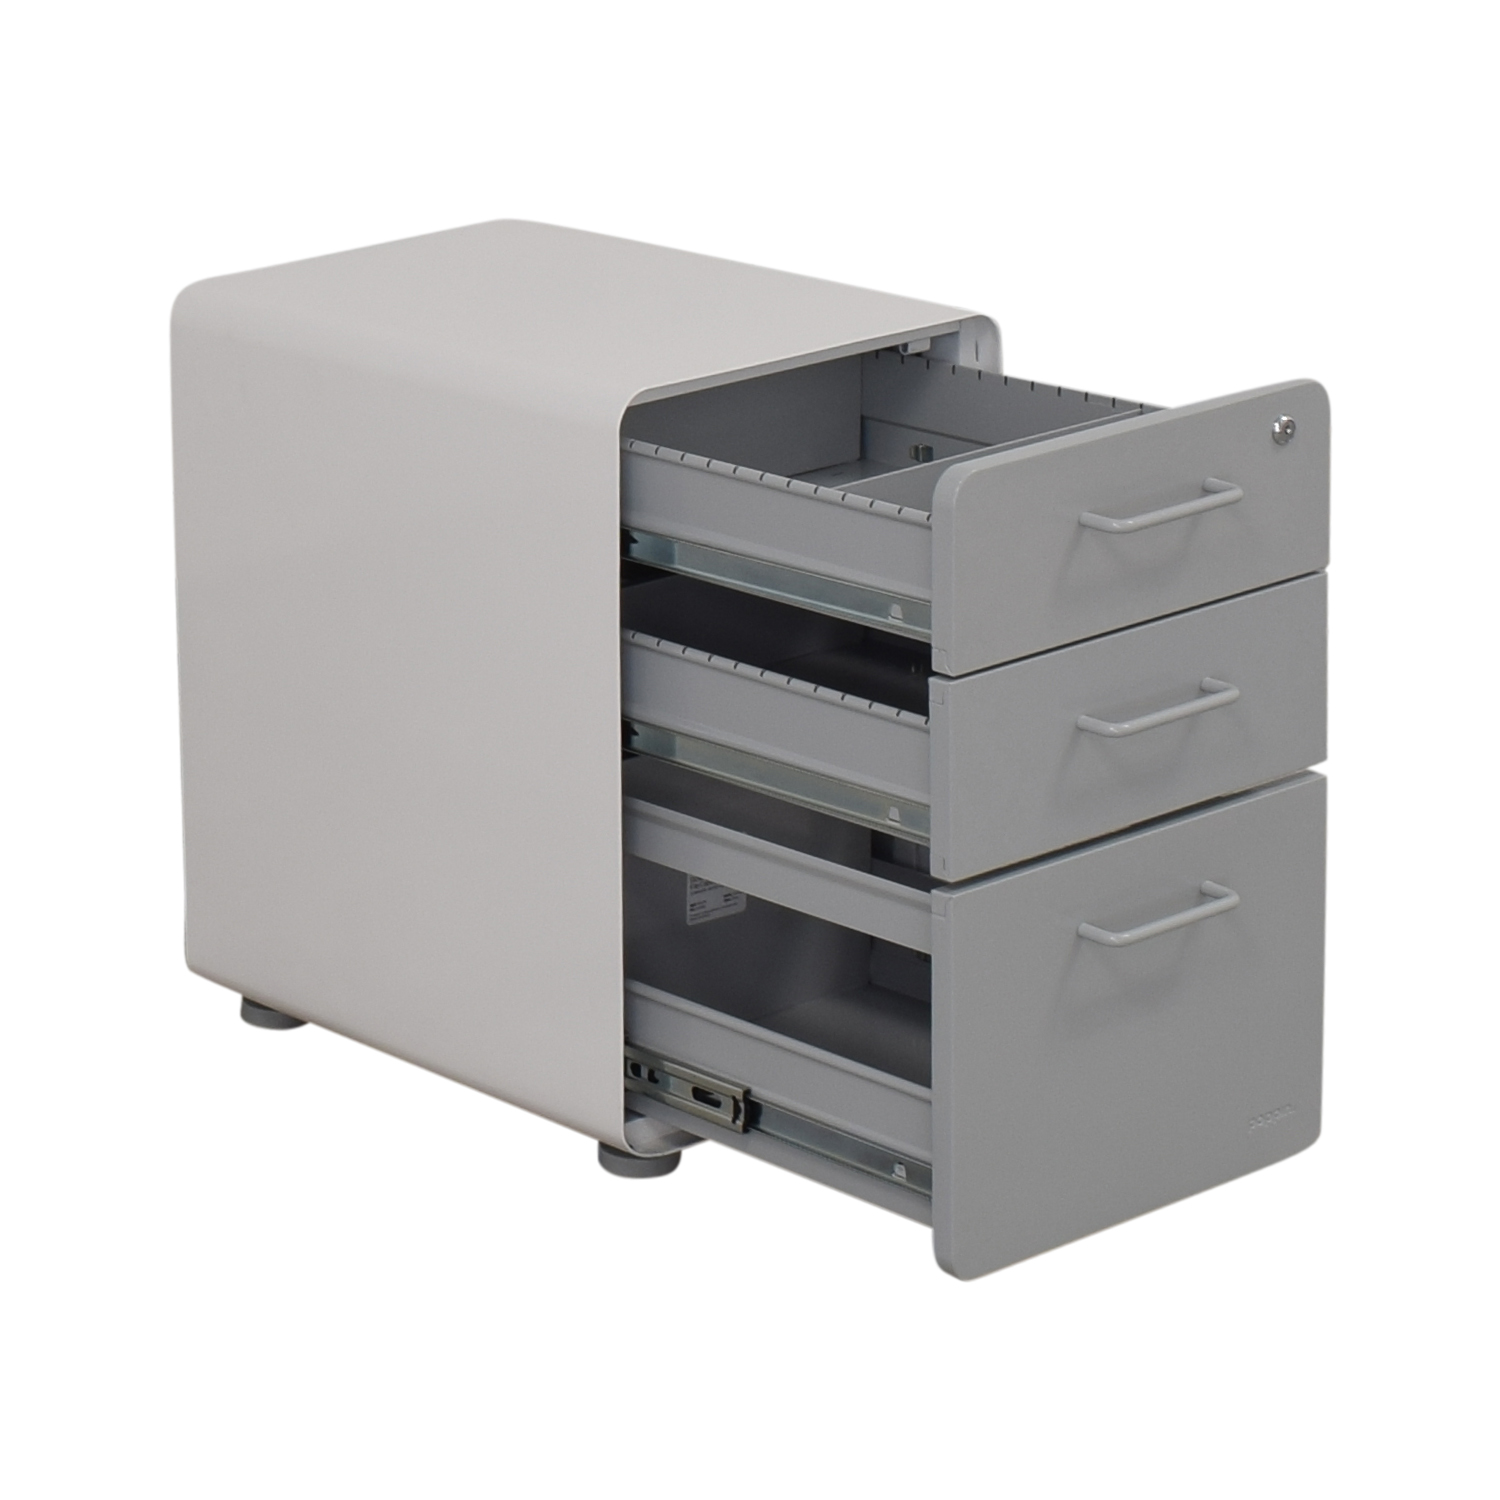 shop Poppin Poppin Stow File Cabinet online